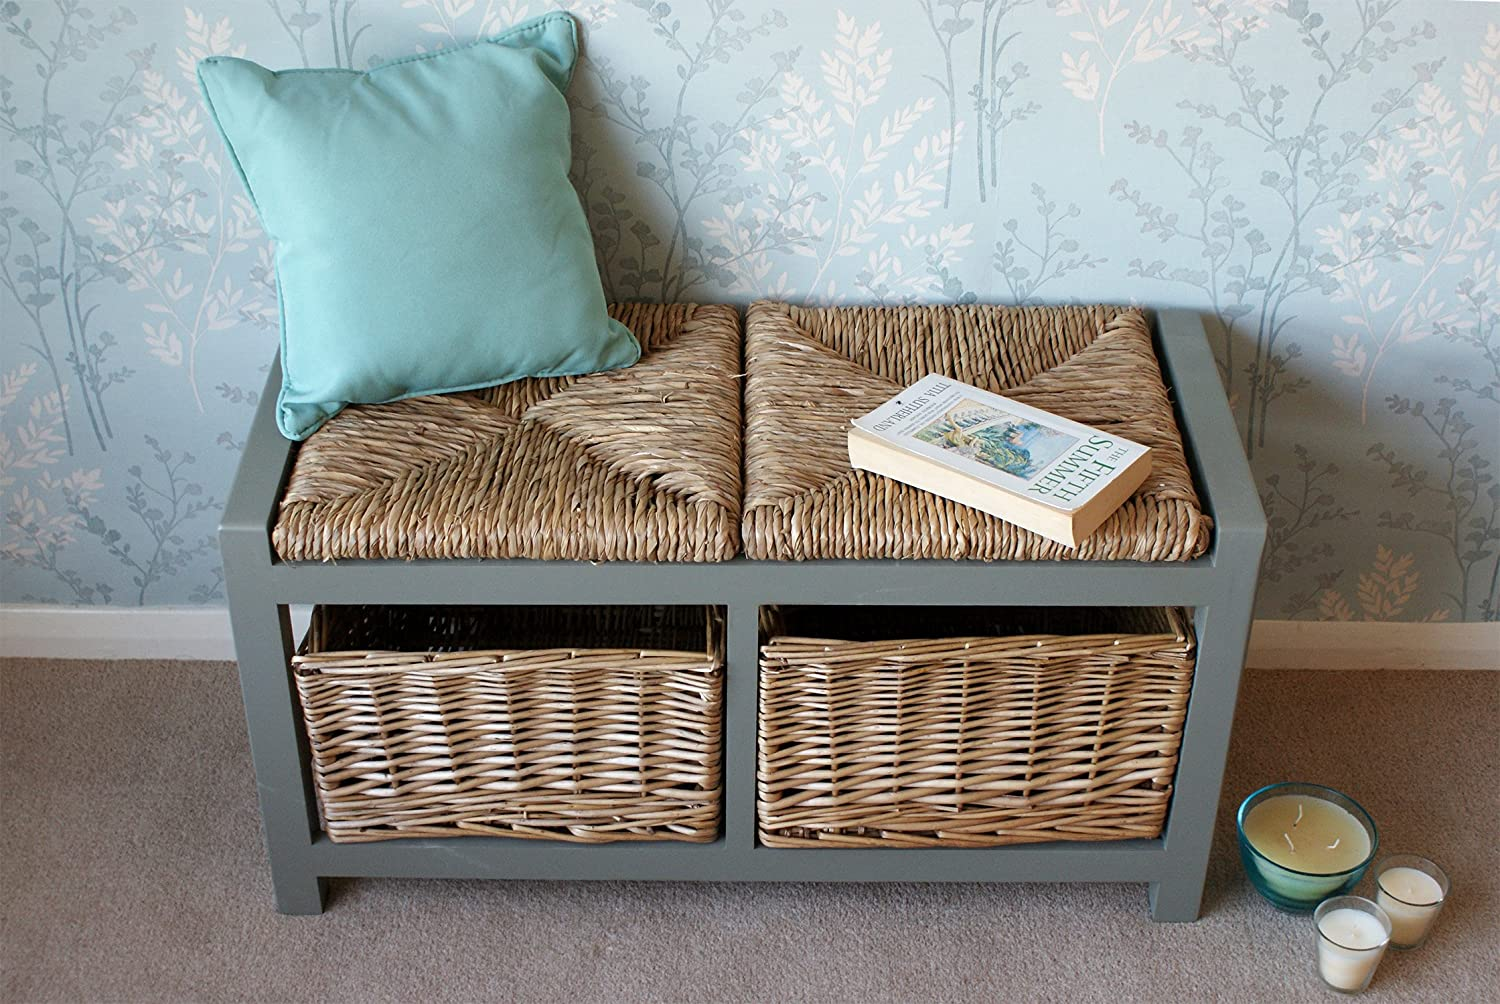 Gloucester 2 Seater Storage Bench In Blue Grey Finish With 2 X Wicker  Rattan Basket Drawers, Cabinet Farmhouse: Amazon.co.uk: Kitchen U0026 Home